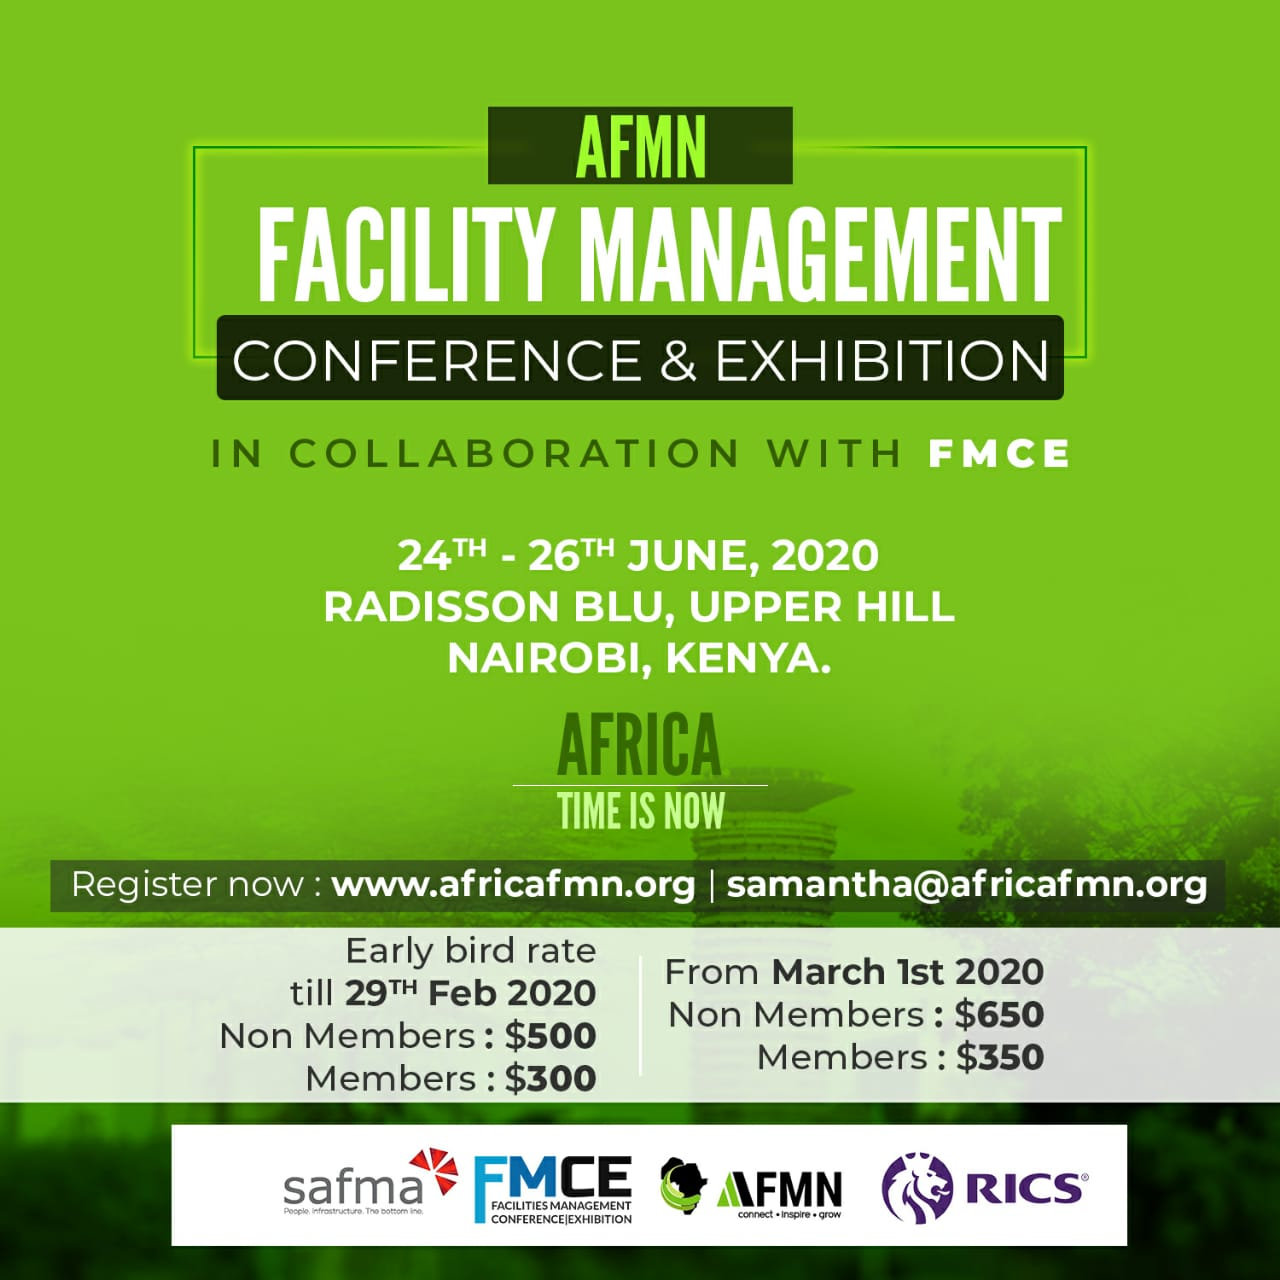 Facility Management Conference and Exhibition